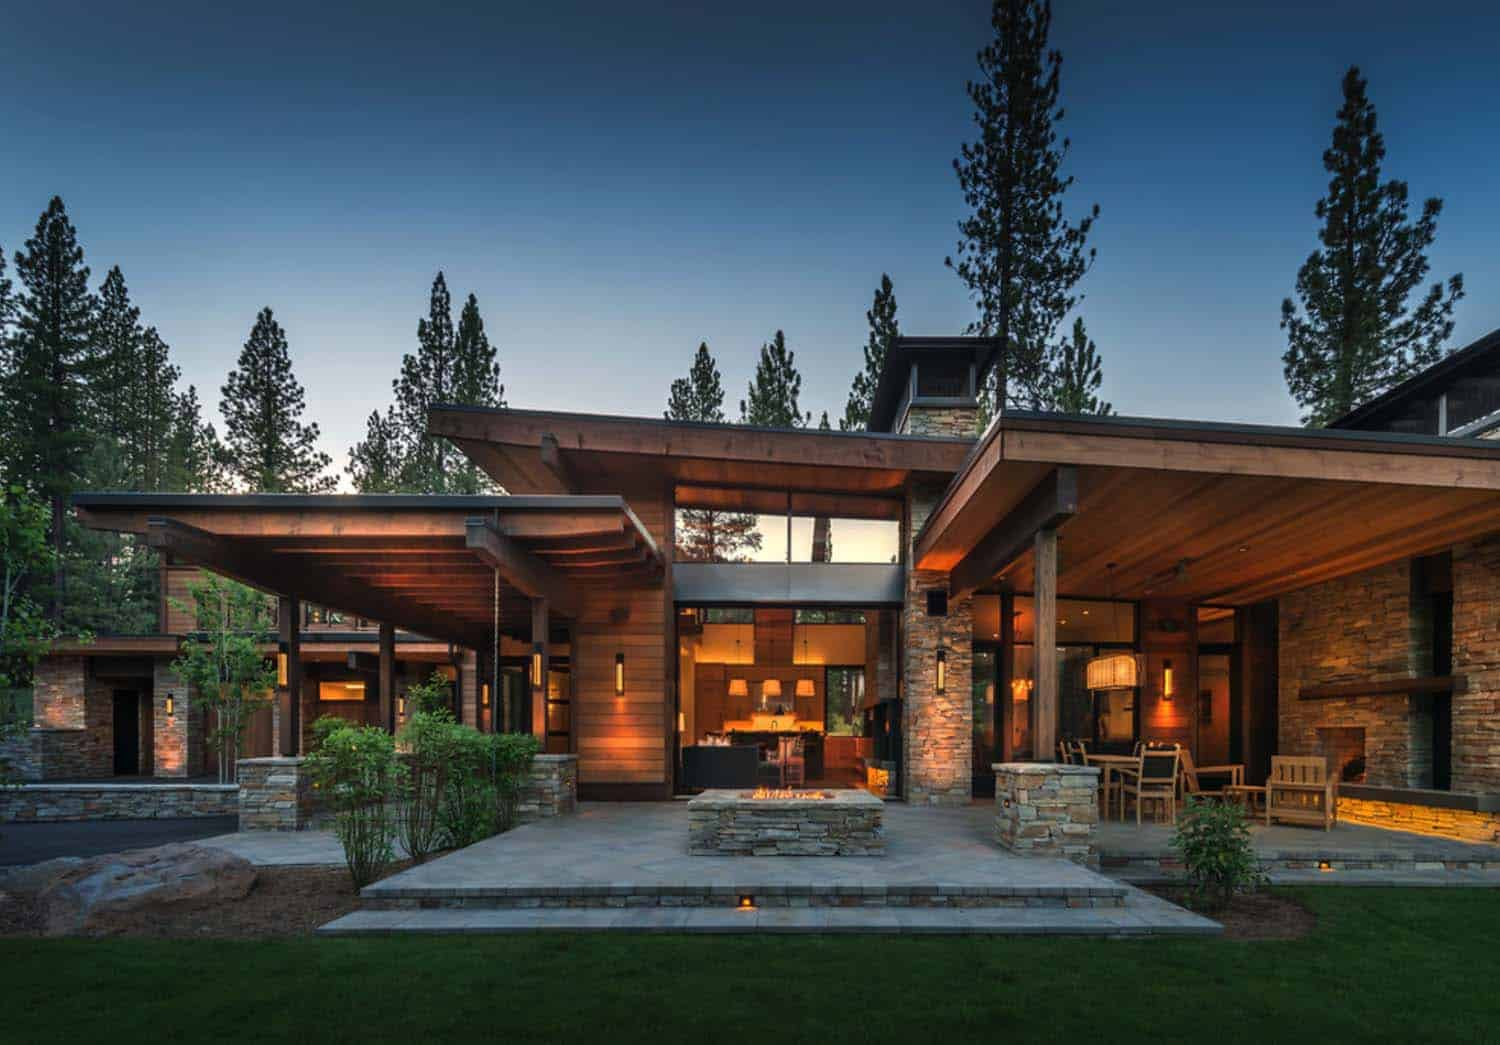 Mountain Modern Home-Ryan Group Architects-01-1 Kindesign